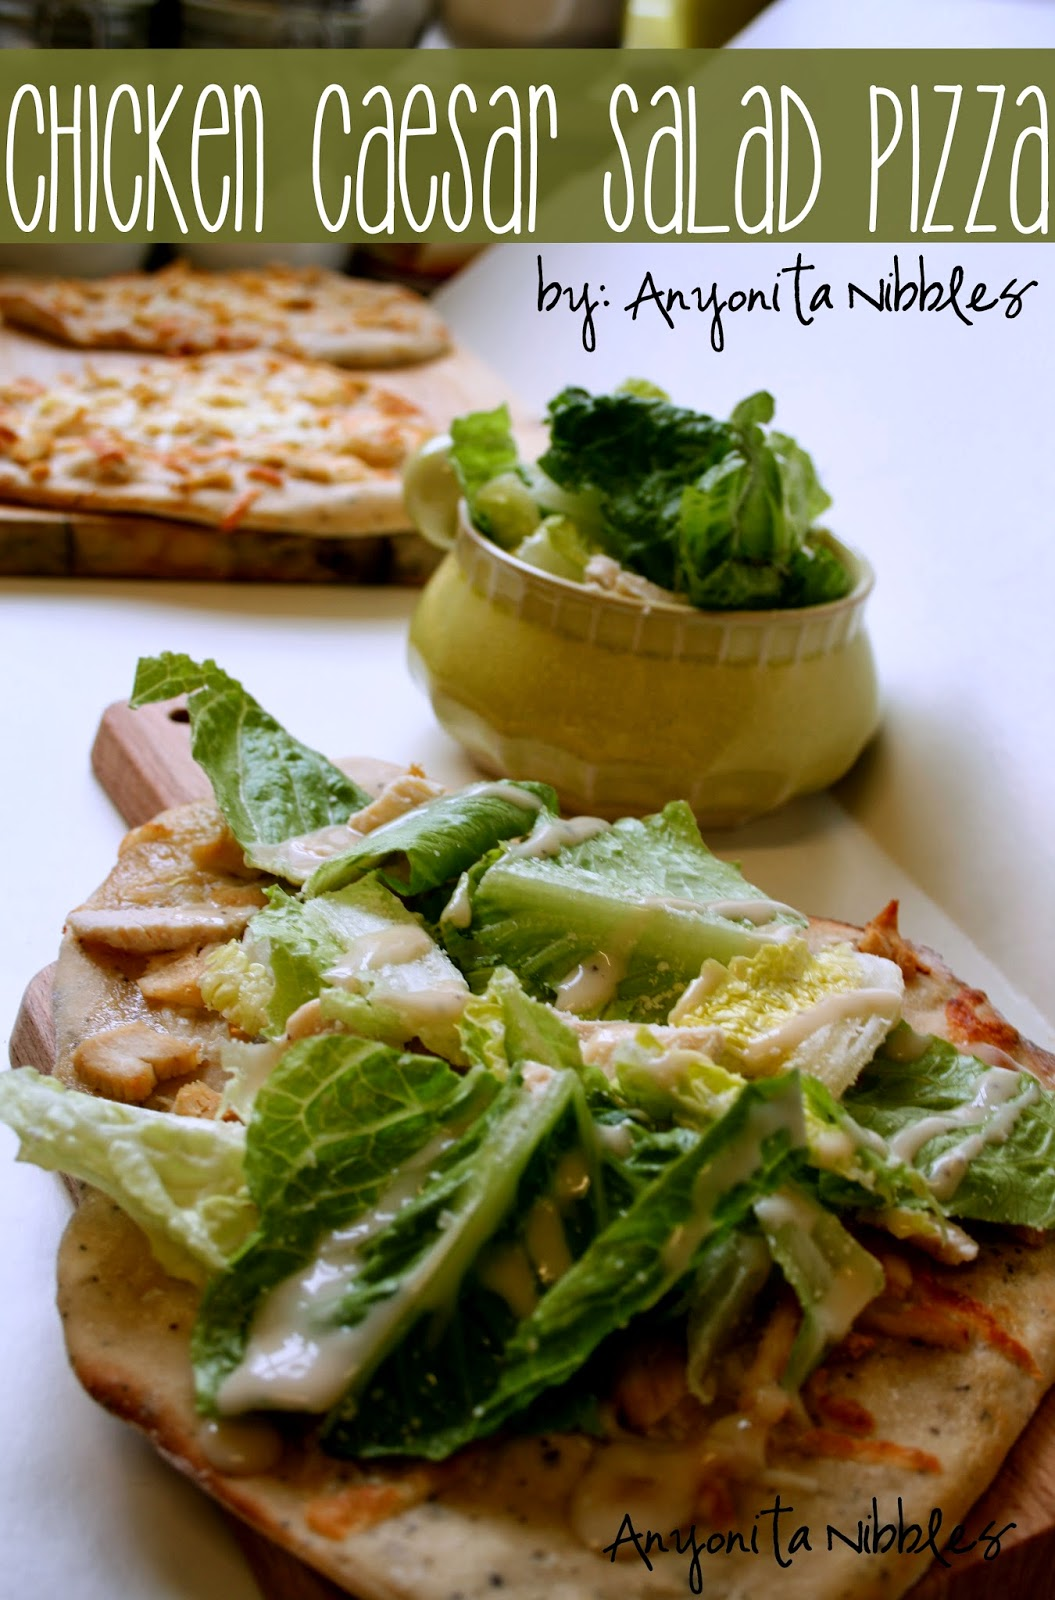 Keep your diet on track and still enjoy pizza with this chicken caesar salad pizza | Anyonita Nibbles